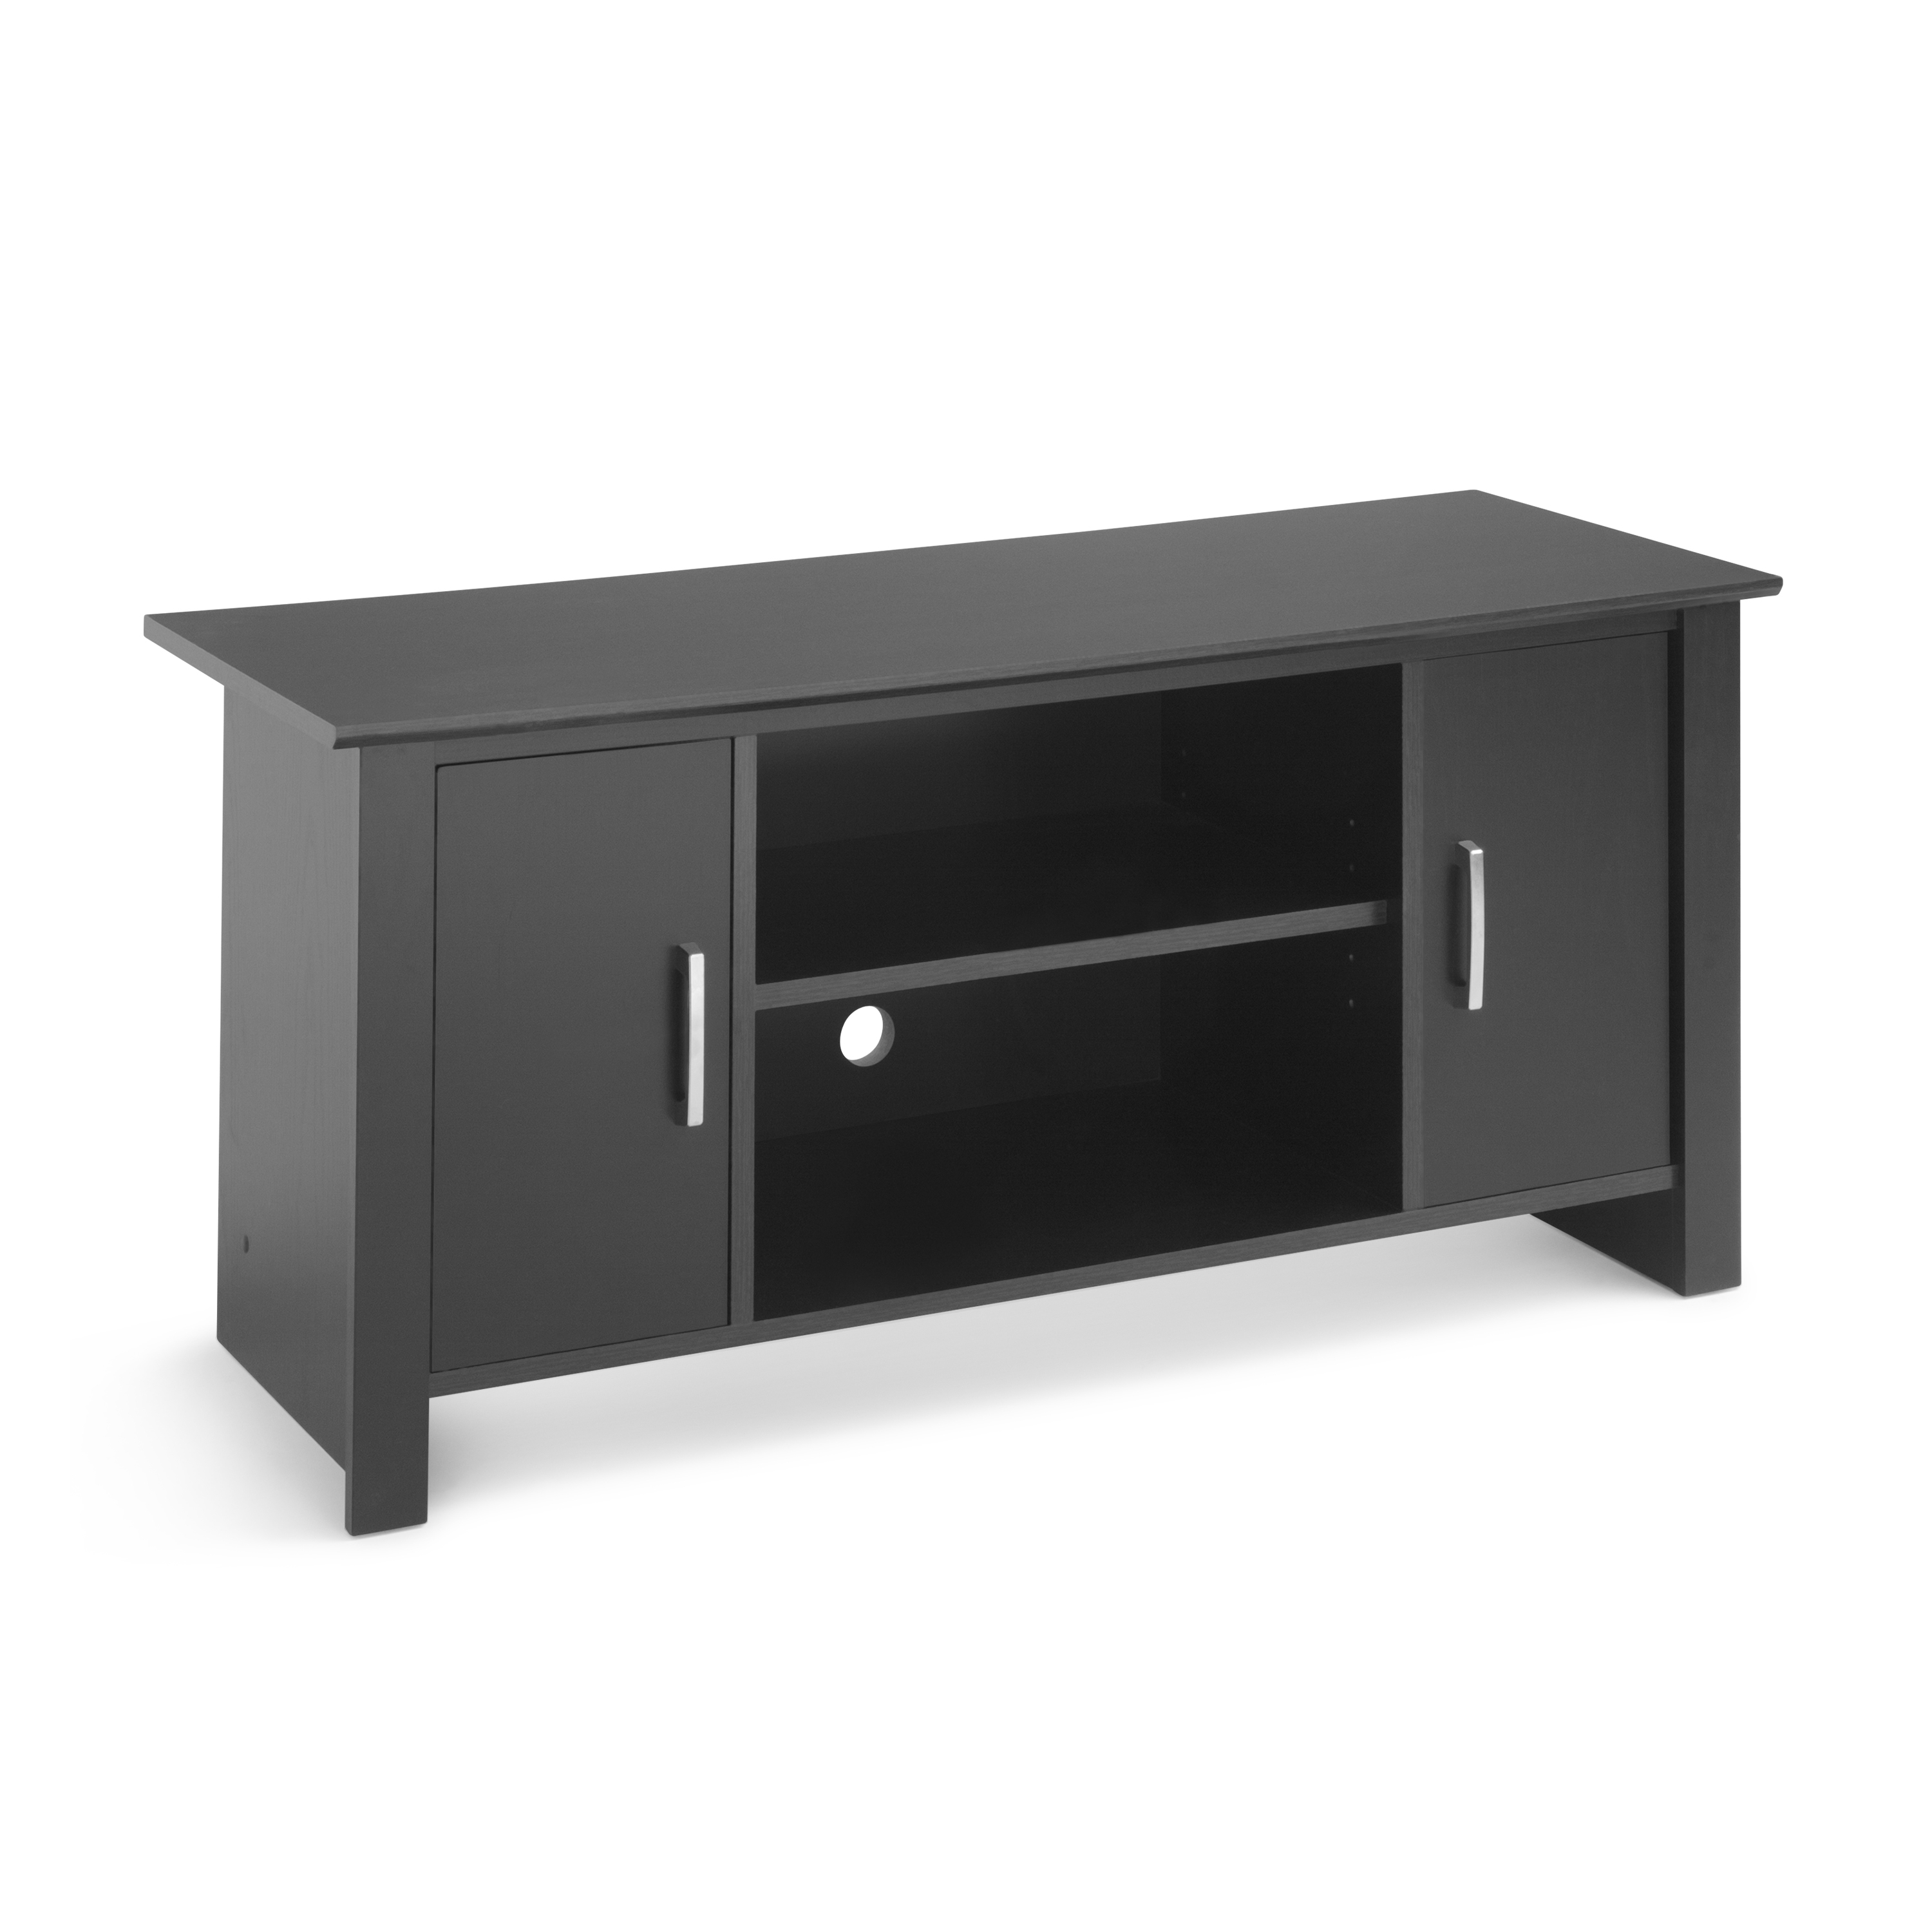 """Canyon 54 Inch Tv Stands Intended For Best And Newest Mainstays Tv Stand For Flat Screen Tvs Up To 47"""", True Black Oak (View 10 of 20)"""